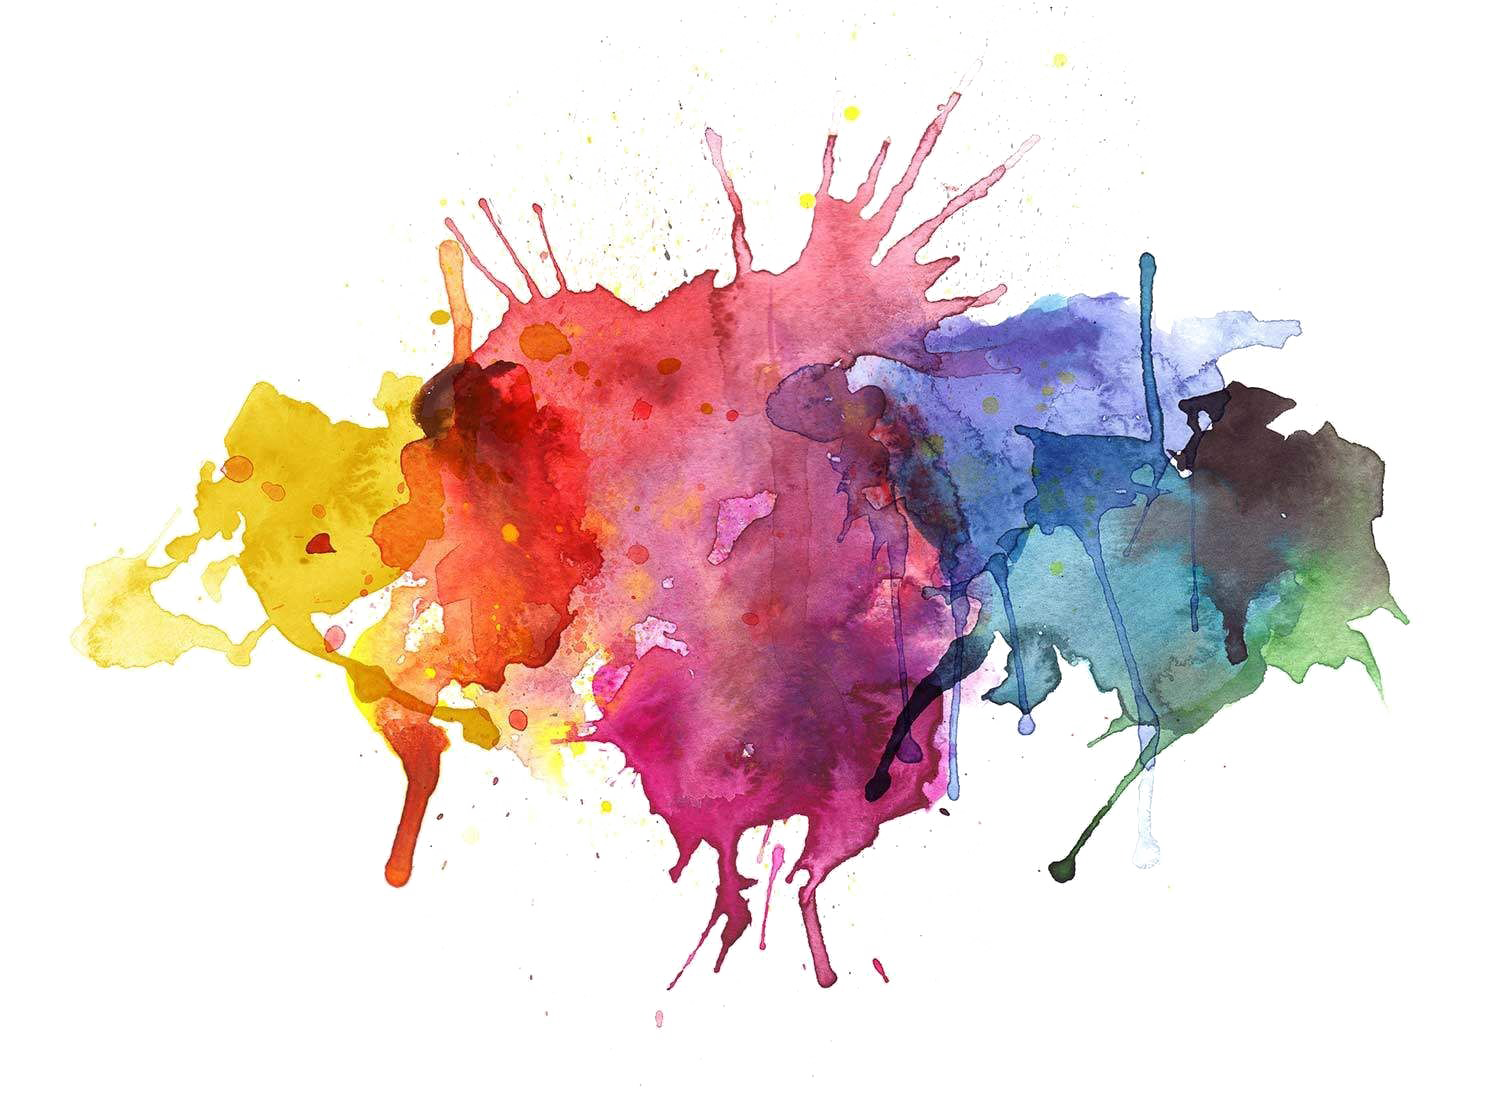 Download Abstract Watercolor Images Free Transparent Image